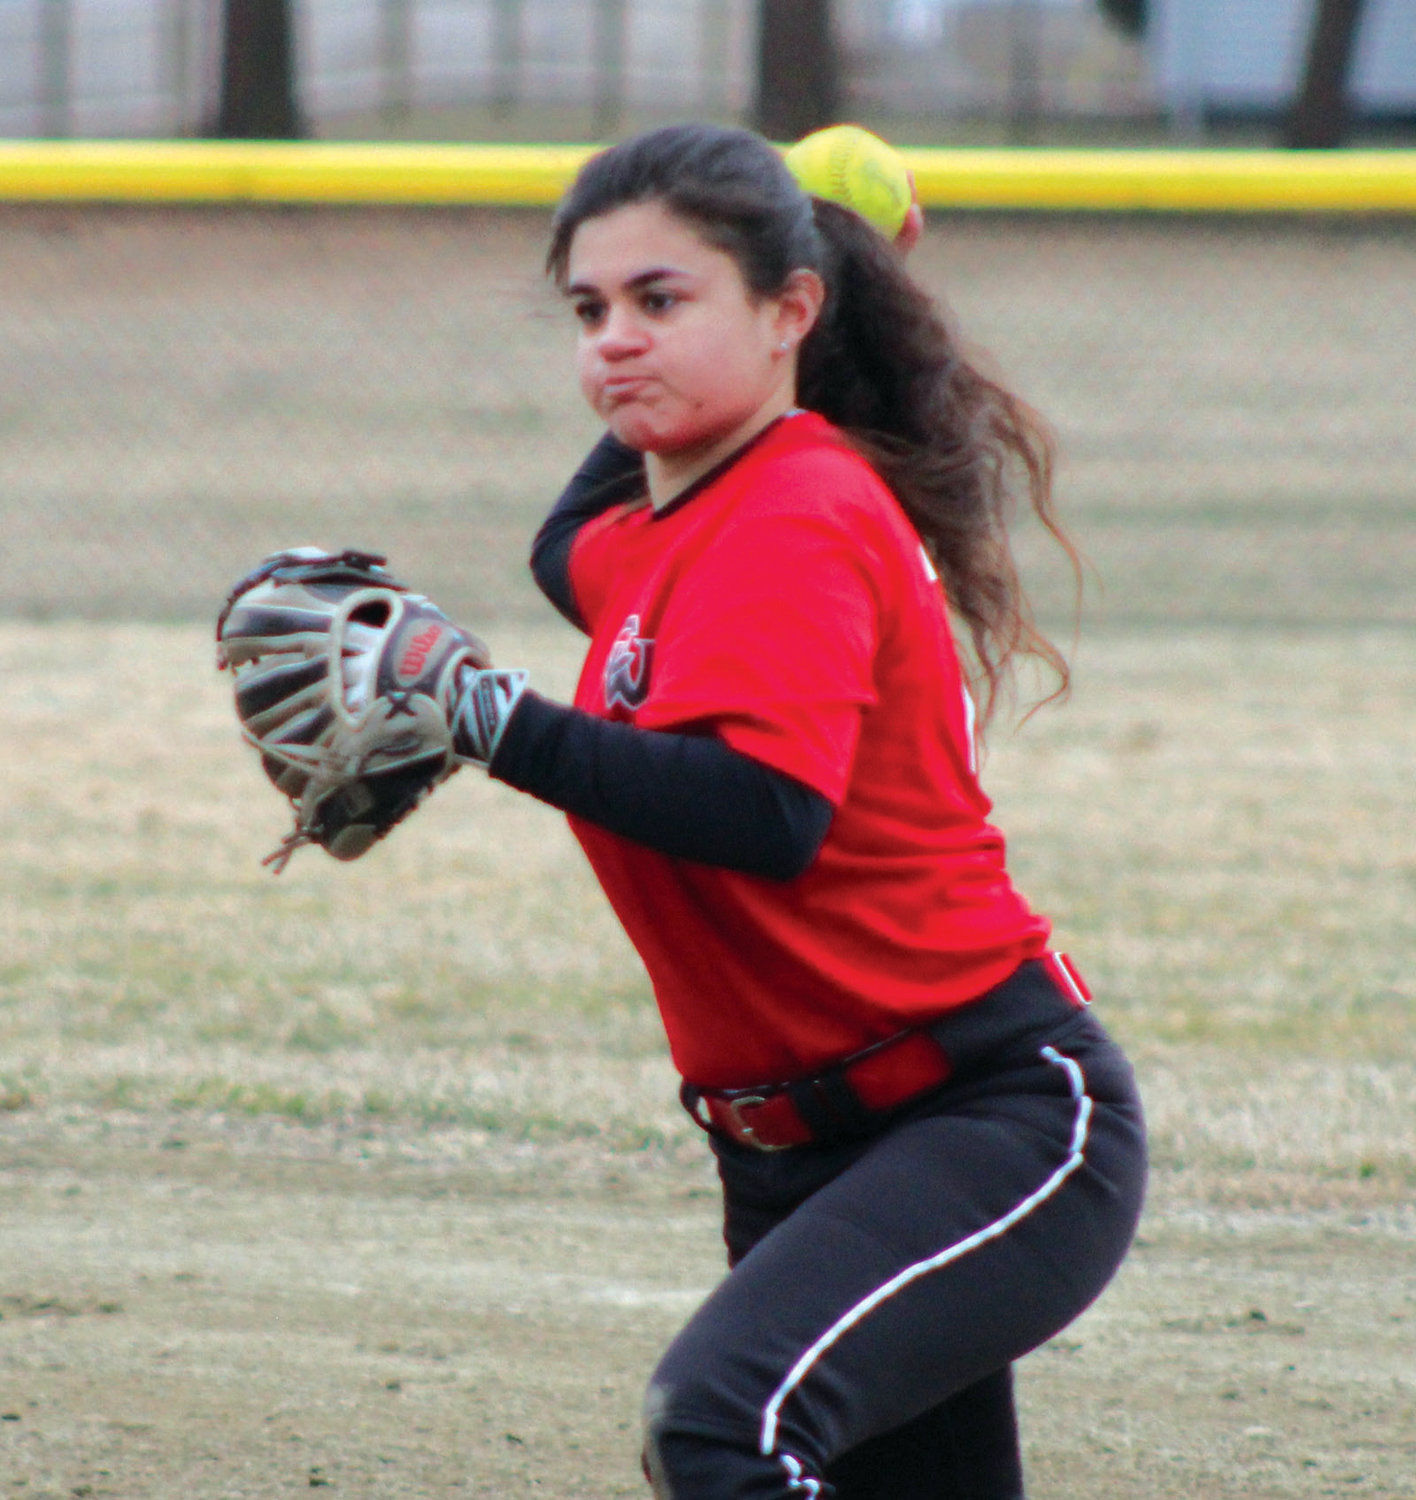 LEADING THE WAY: Cranston West captain Julia Hazian makes a throw to first base during a scrimmage against Pilgrim last week at Pilgrim High School. Hazian is expected to be one of the Falcons' top performers this season, and is one of the top all-around players in Division I.